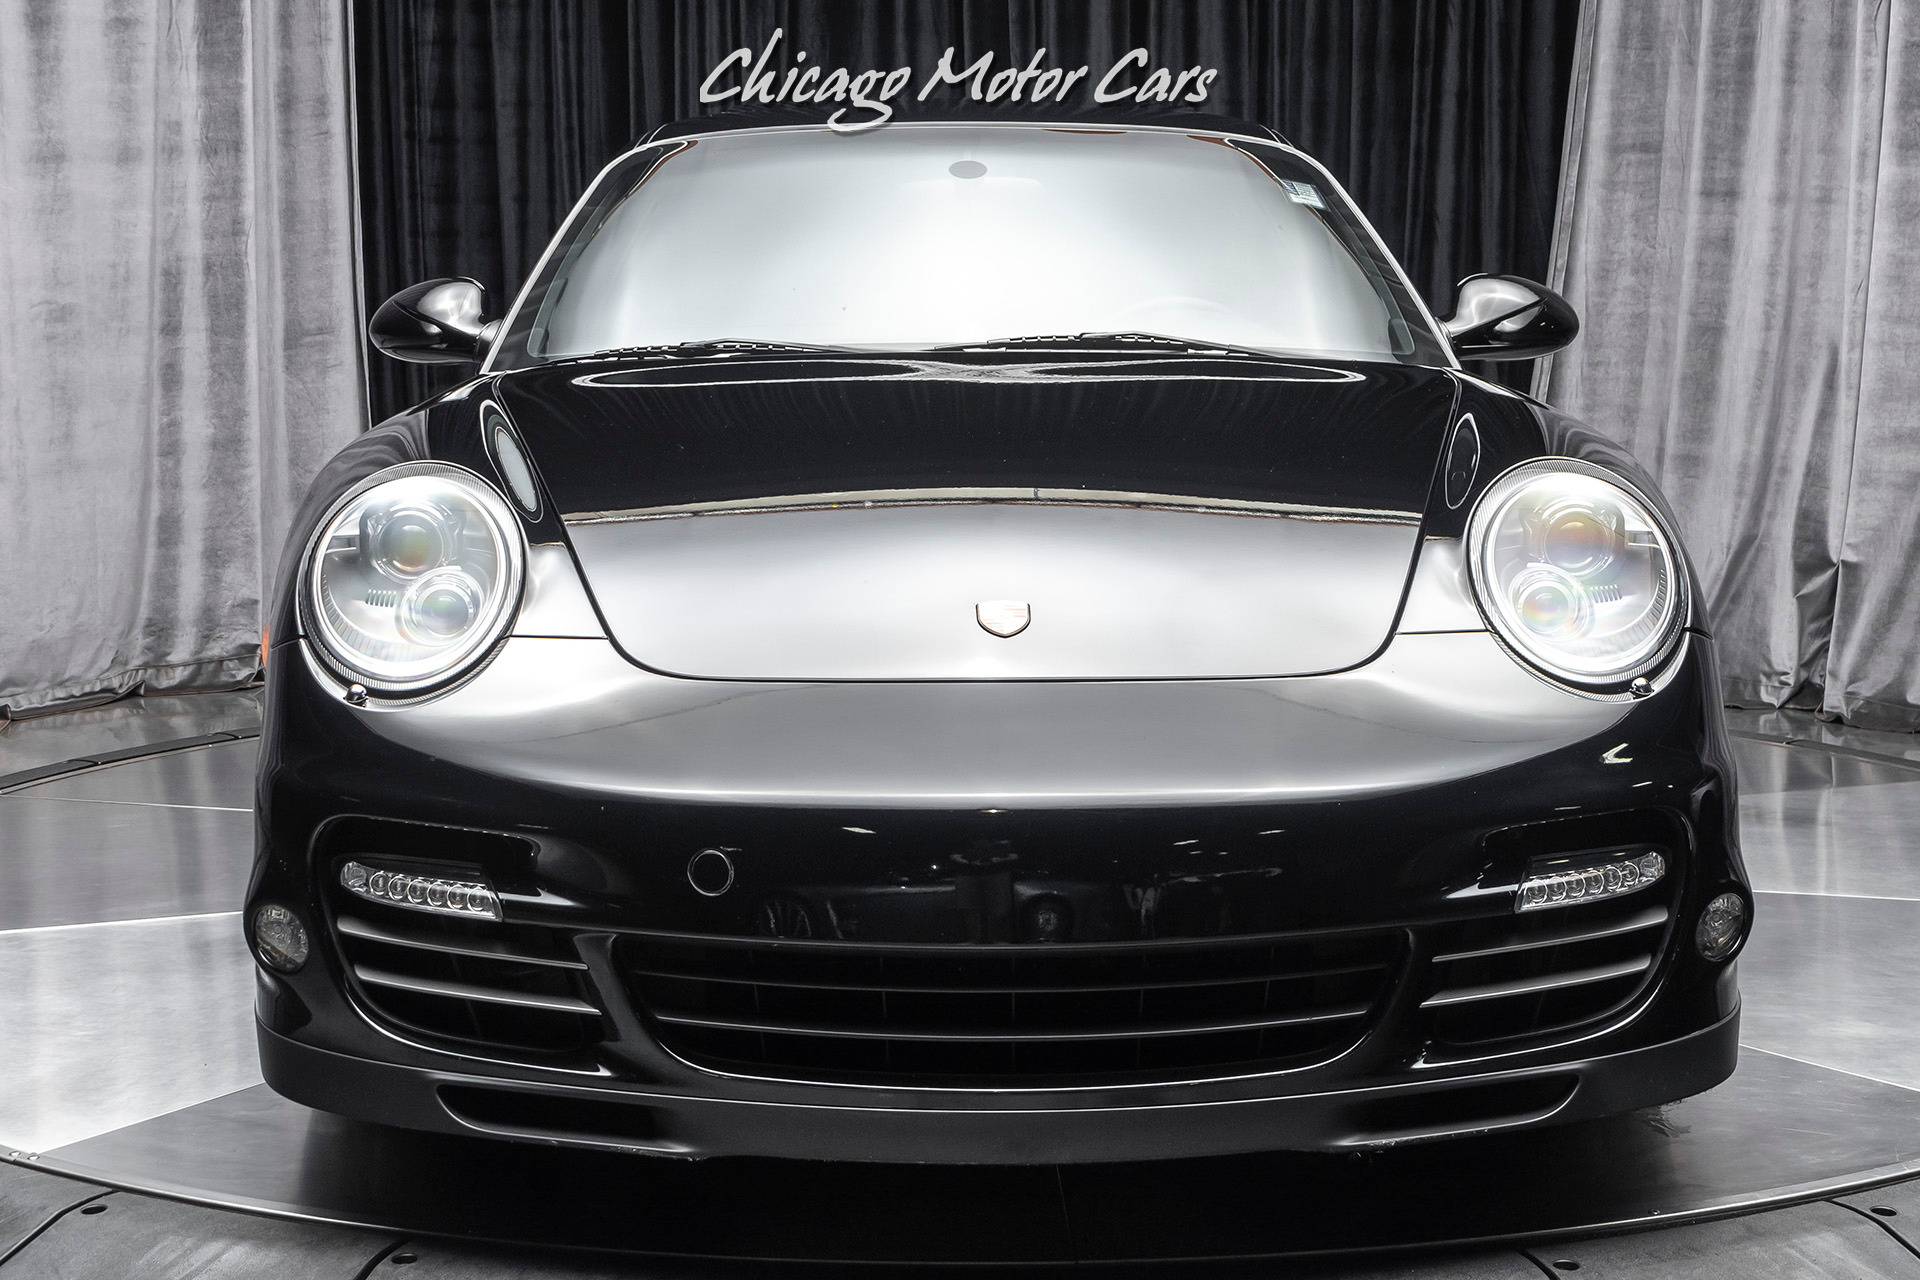 Used-2011-Porsche-911-Turbo-S-Coupe-MSRP-173225